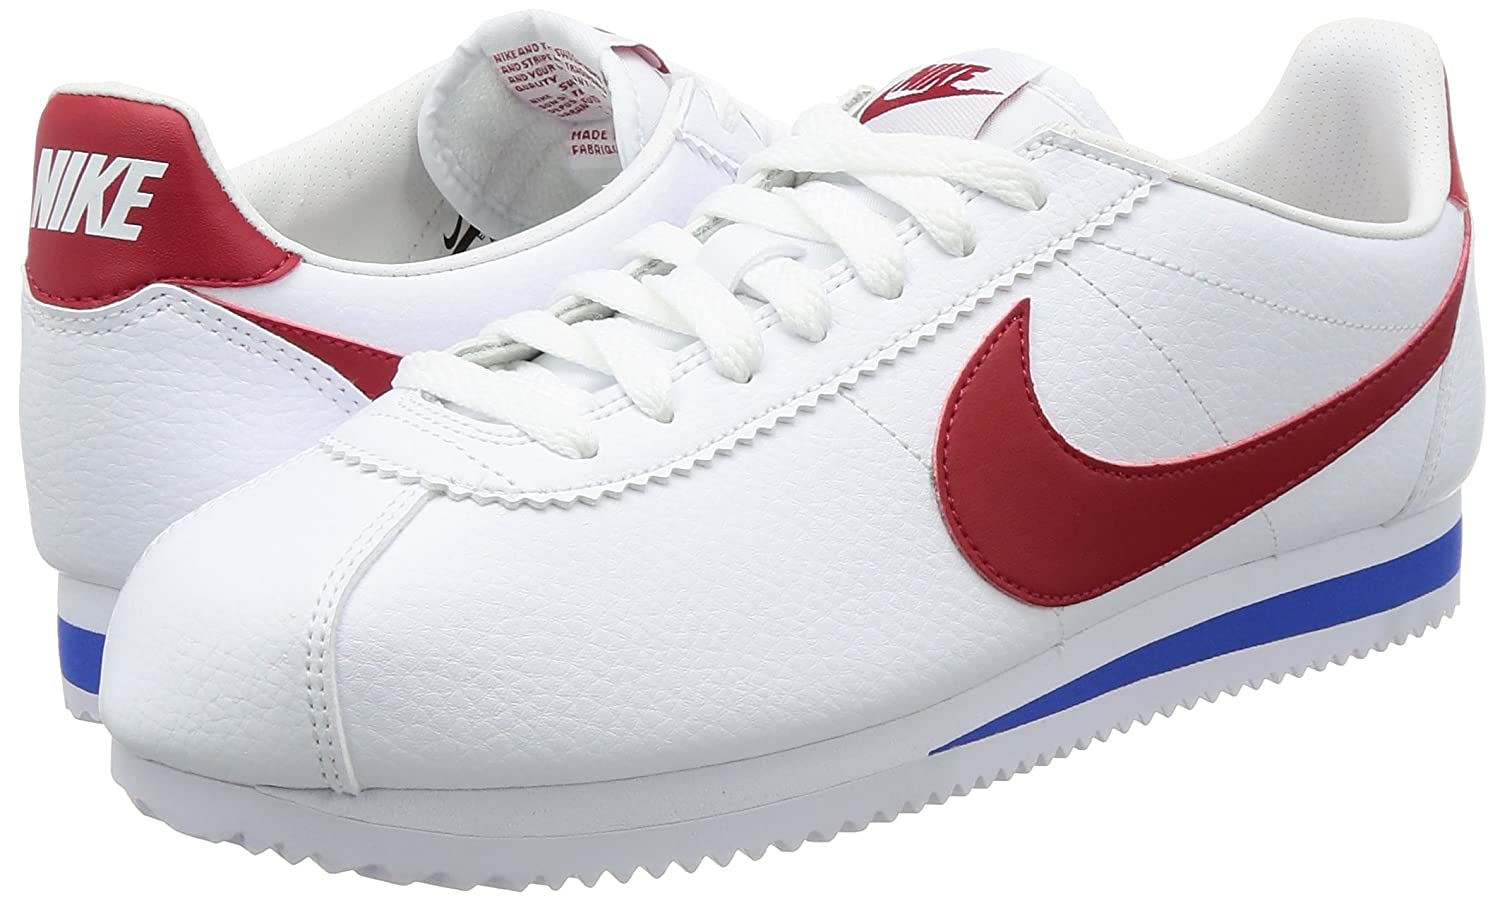 quality design bde71 67bf6 Nike Men s Classic Cortez Leather 749571-154 Running Shoes  Amazon.co.uk   Shoes   Bags